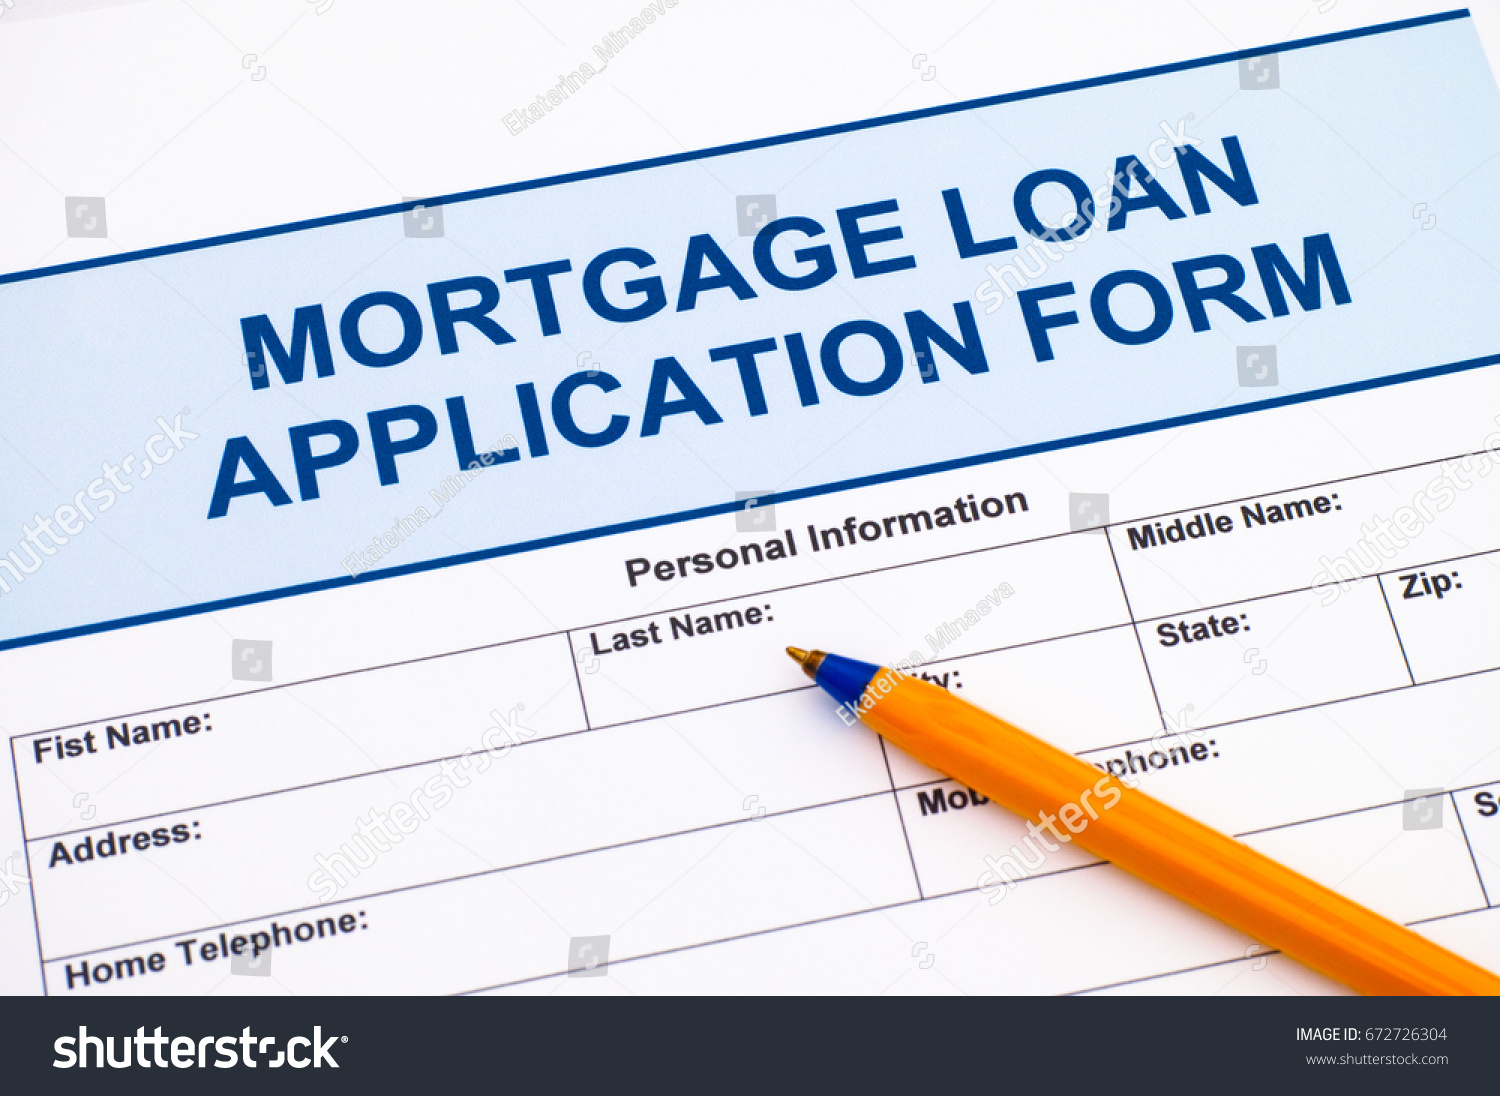 Mortgage Loan Application Form Ballpoint Pen Stock Photo Edit Now Diagram With